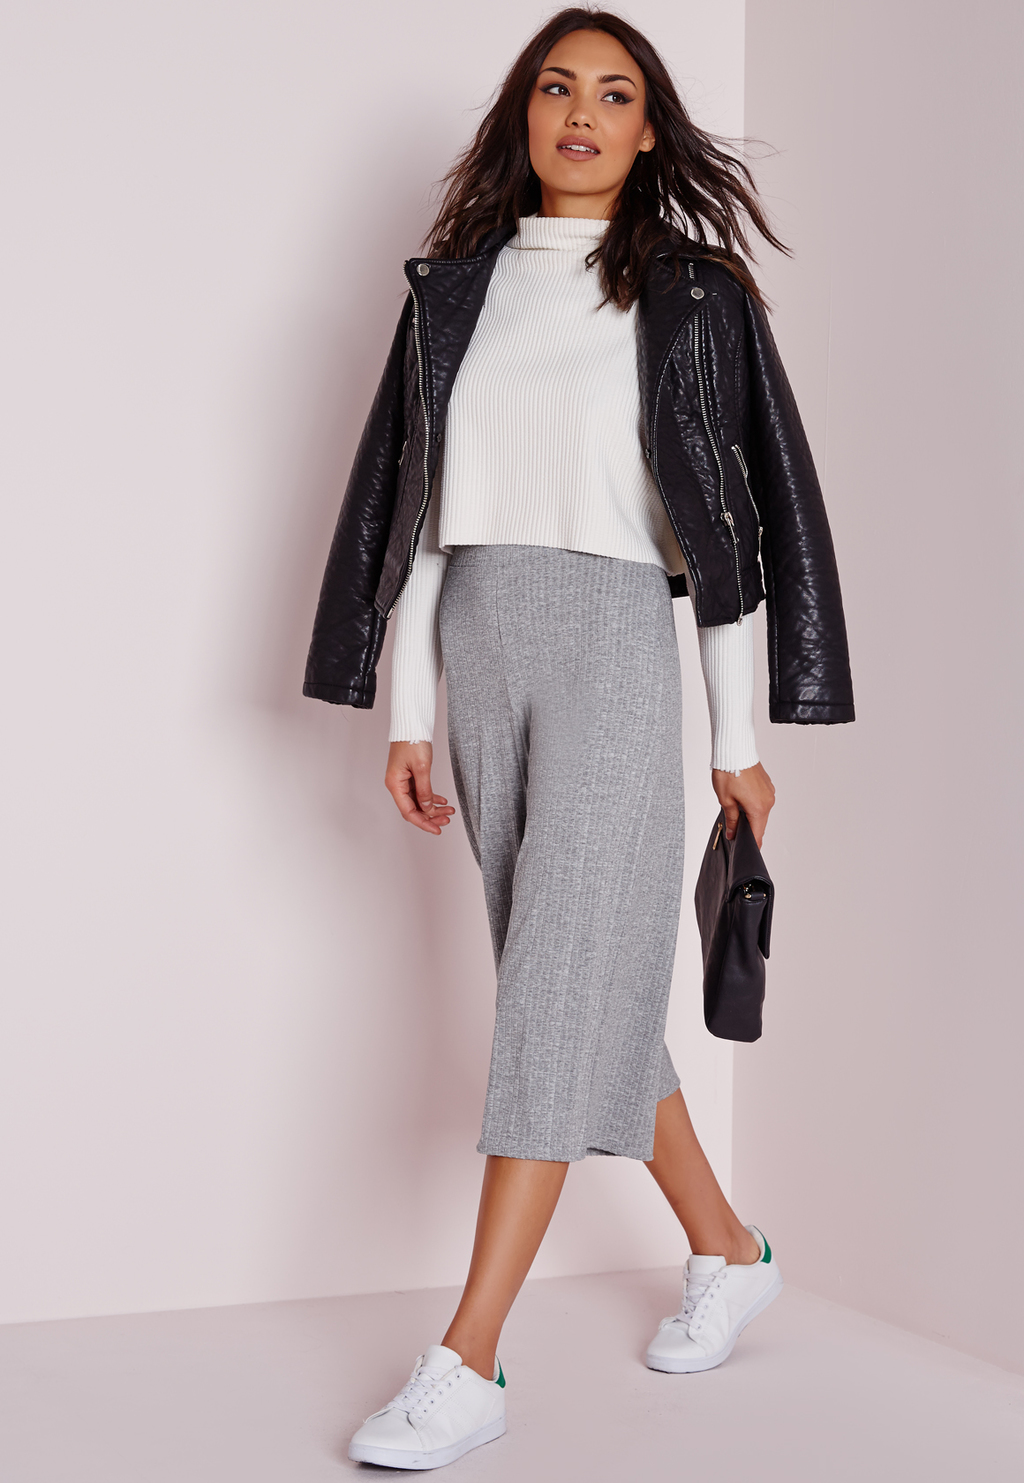 Ribbed Culottes Grey, Grey - pattern: plain; pocket detail: pockets at the sides; waist: mid/regular rise; predominant colour: light grey; occasions: casual, creative work; fibres: polyester/polyamide - stretch; pattern type: fabric; texture group: other - light to midweight; season: a/w 2015; style: culotte; length: below the knee; fit: a-line